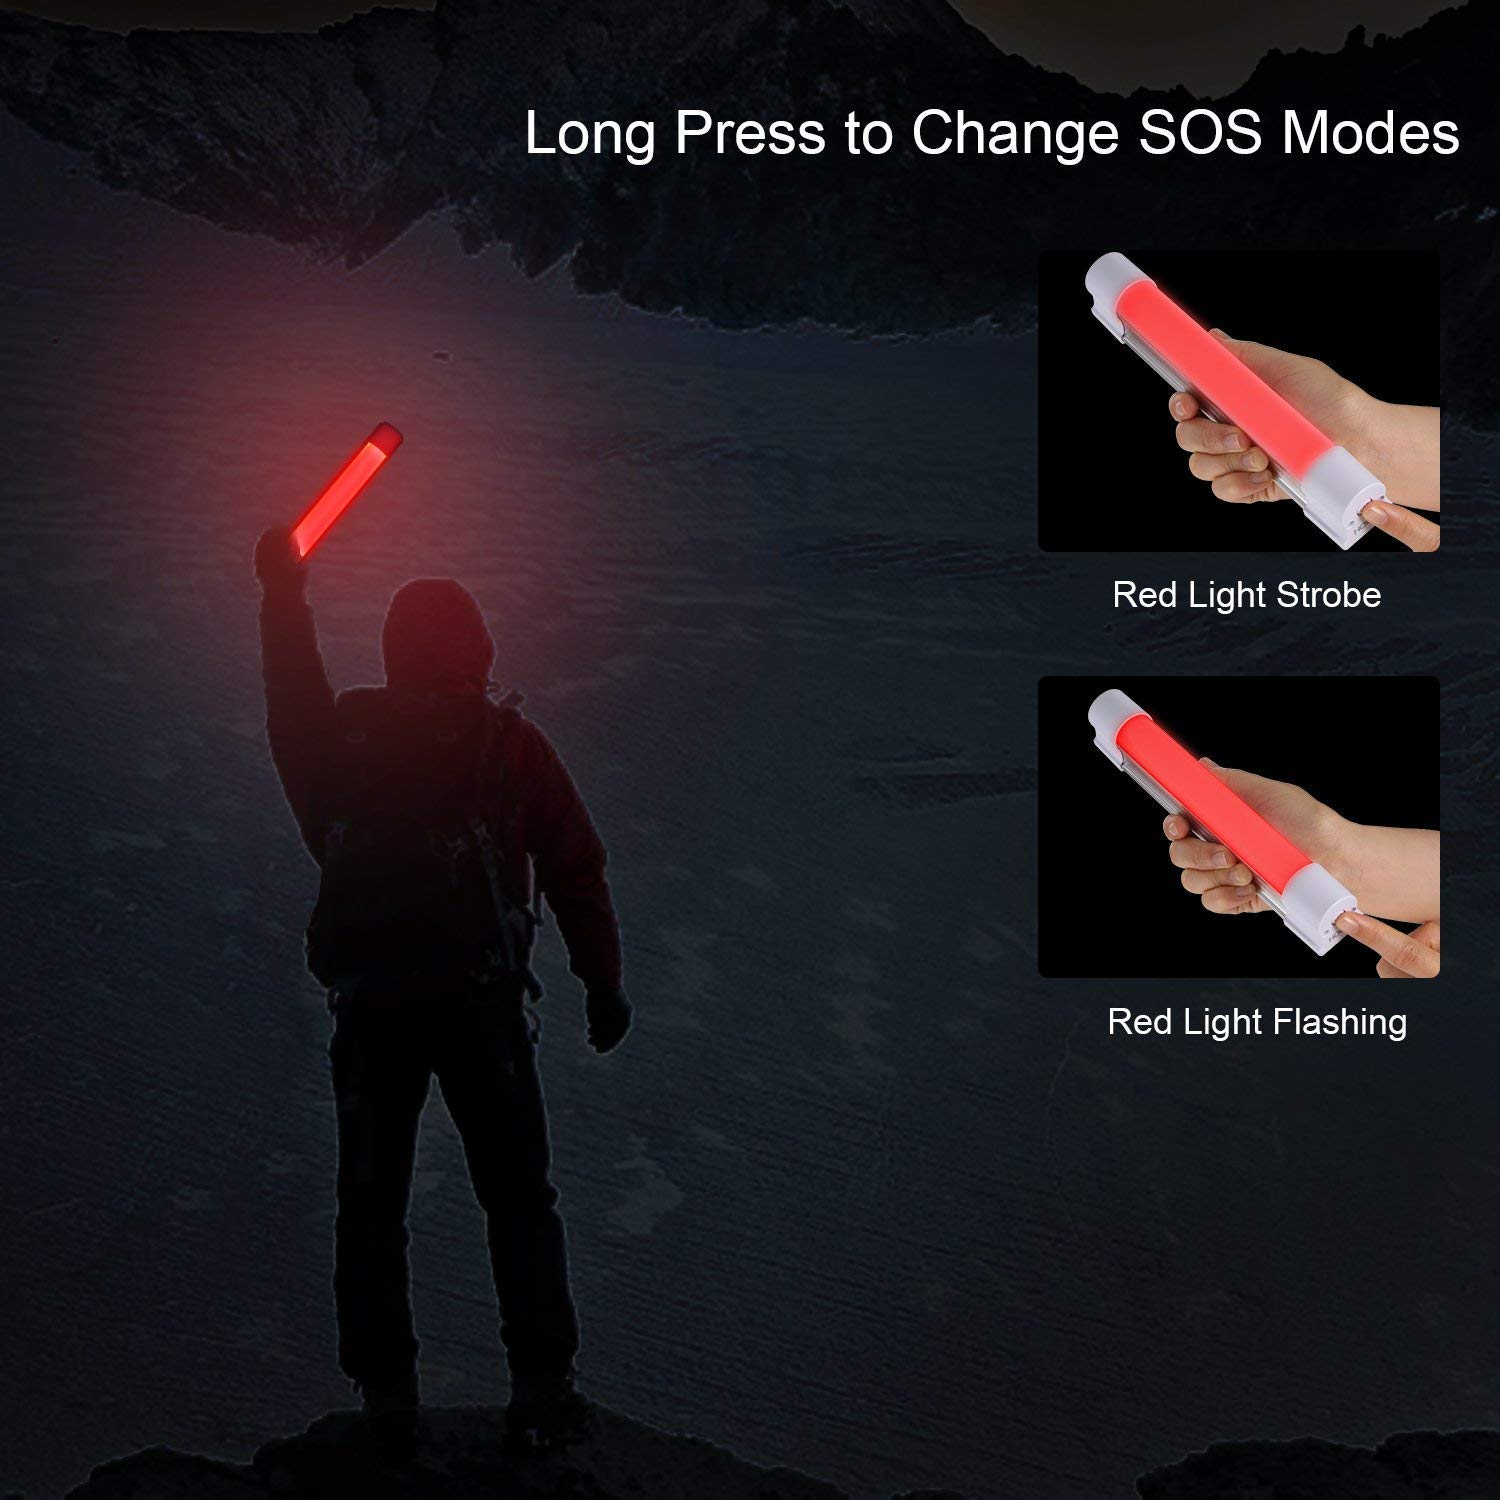 Portable Emergency Light LED Camping Lamp with SOS Mode by HOBFU for Hiking Riding Fishing Car Repairing Flashlight Closet Indoor Outdoor USB Rechargeable with Magnetic Back